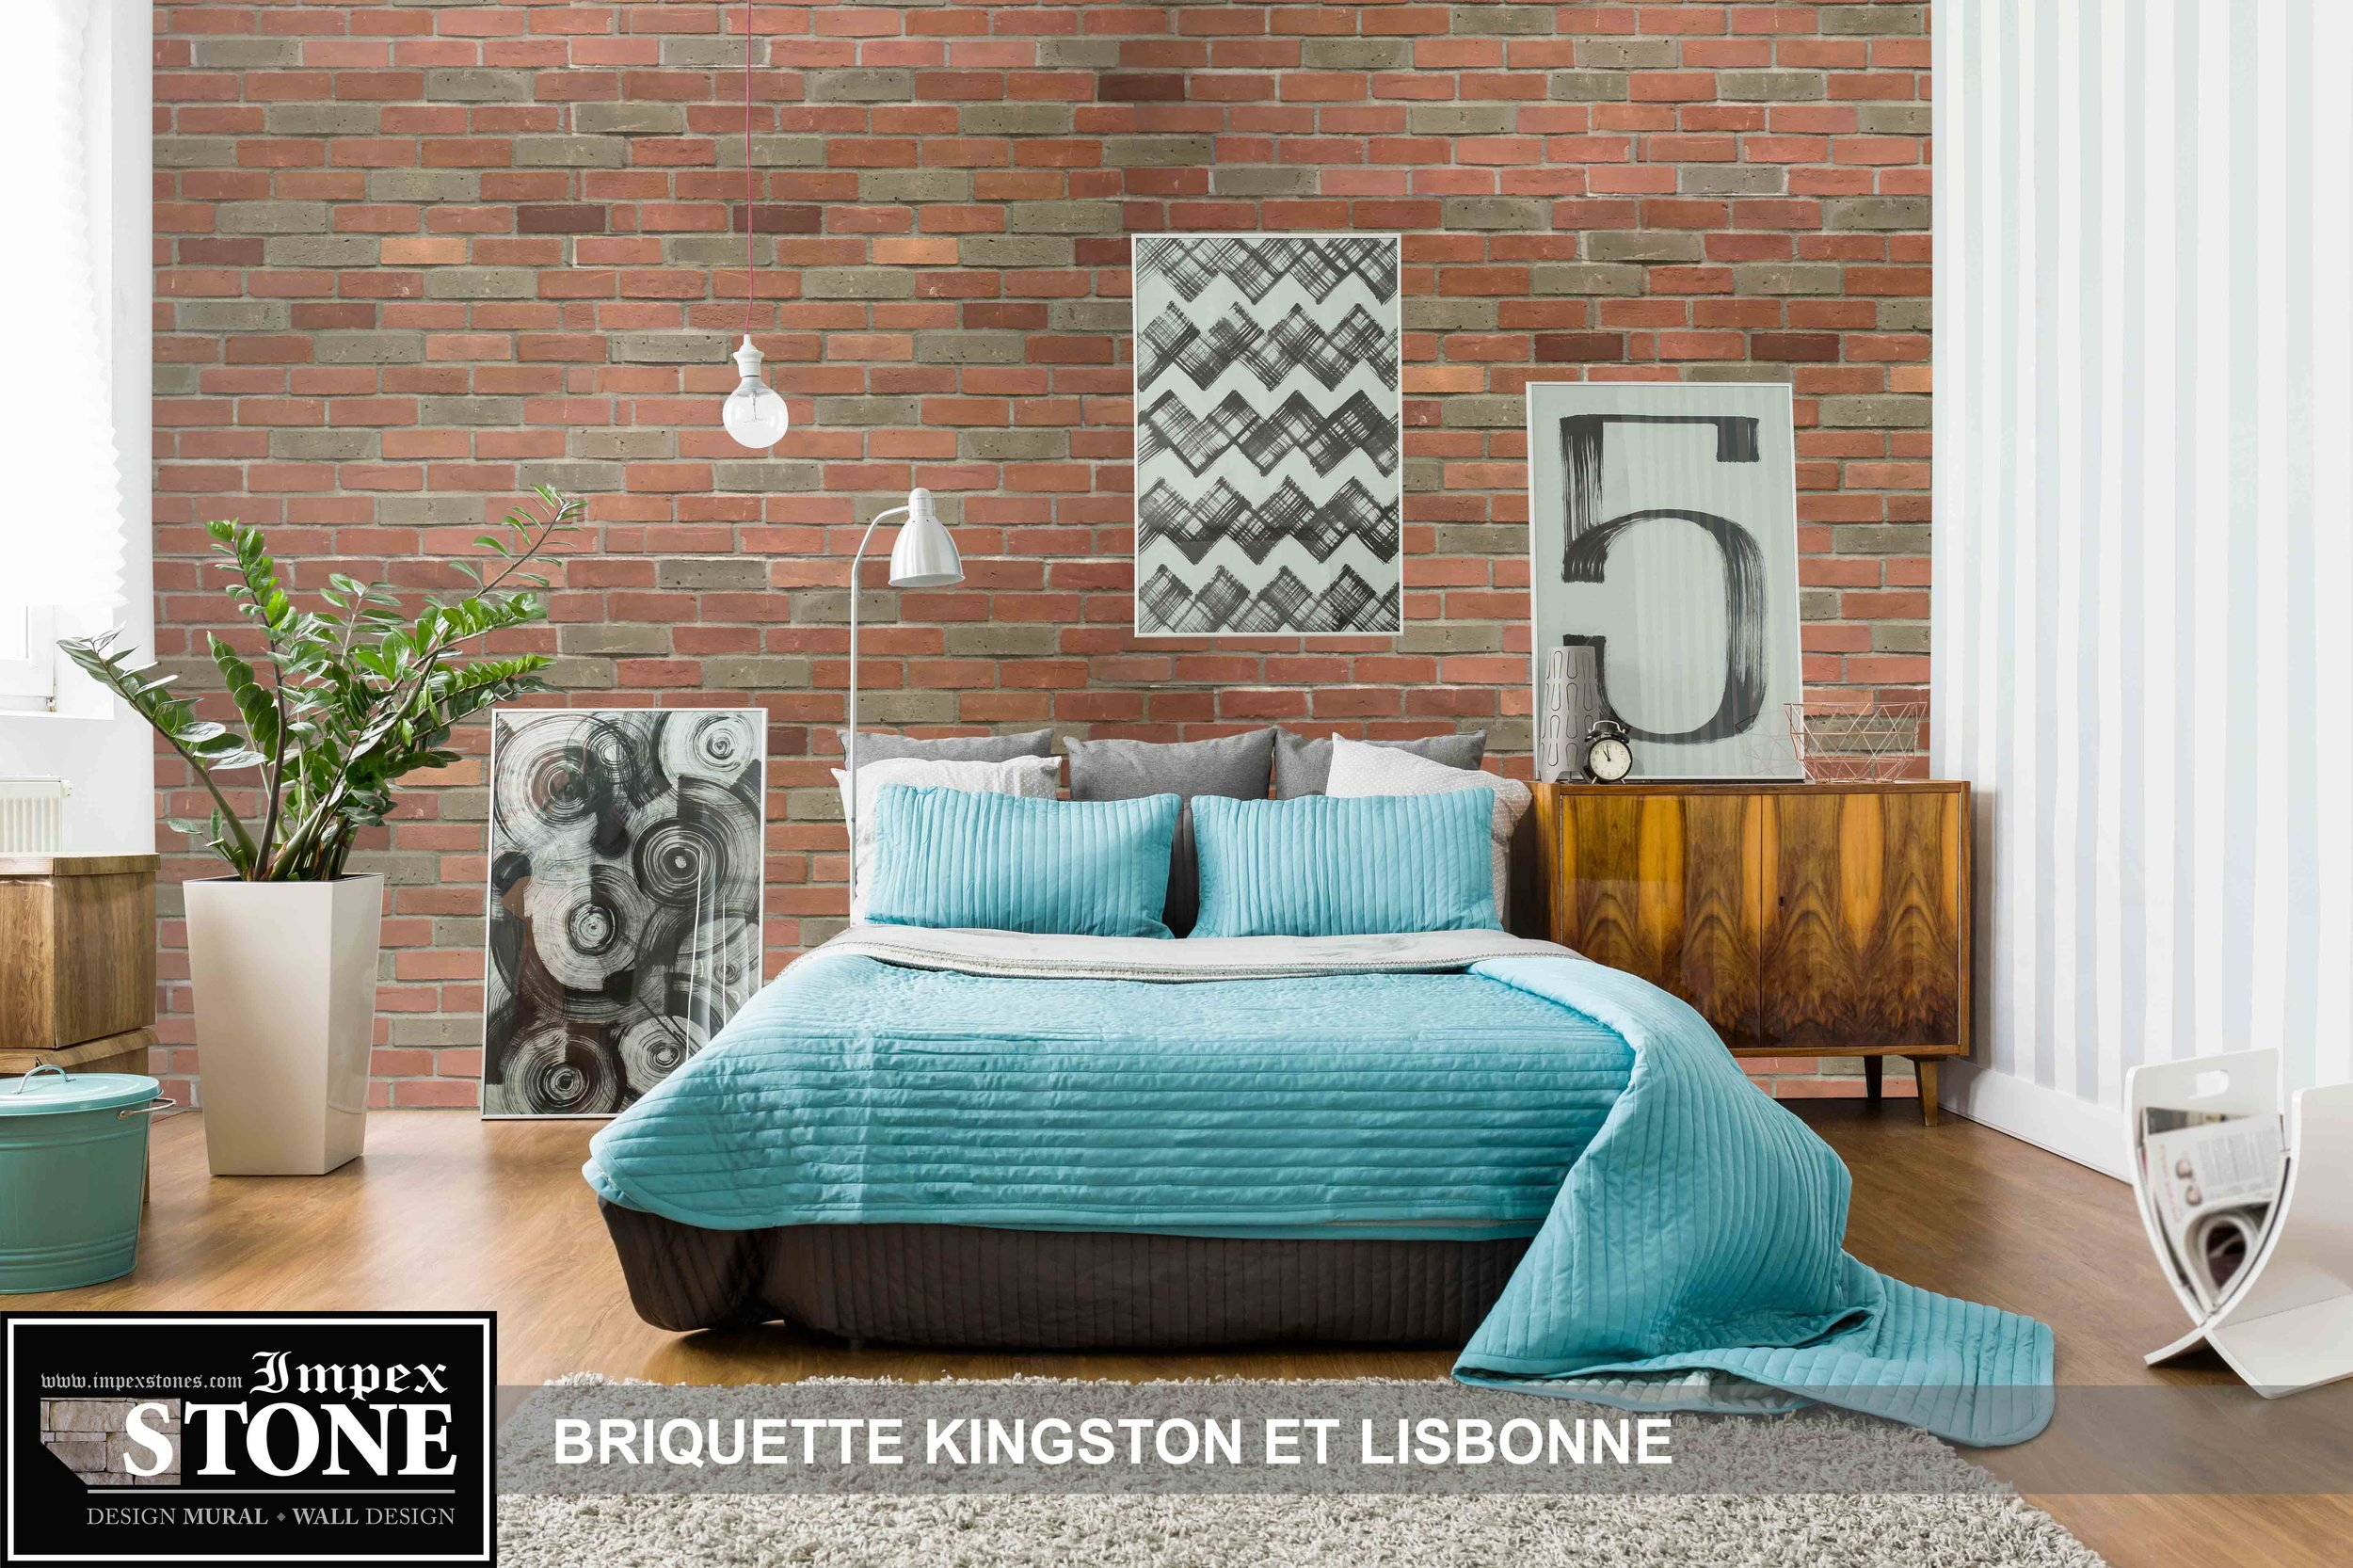 Kingston-lisbonne-chambre-logo-web.jpg